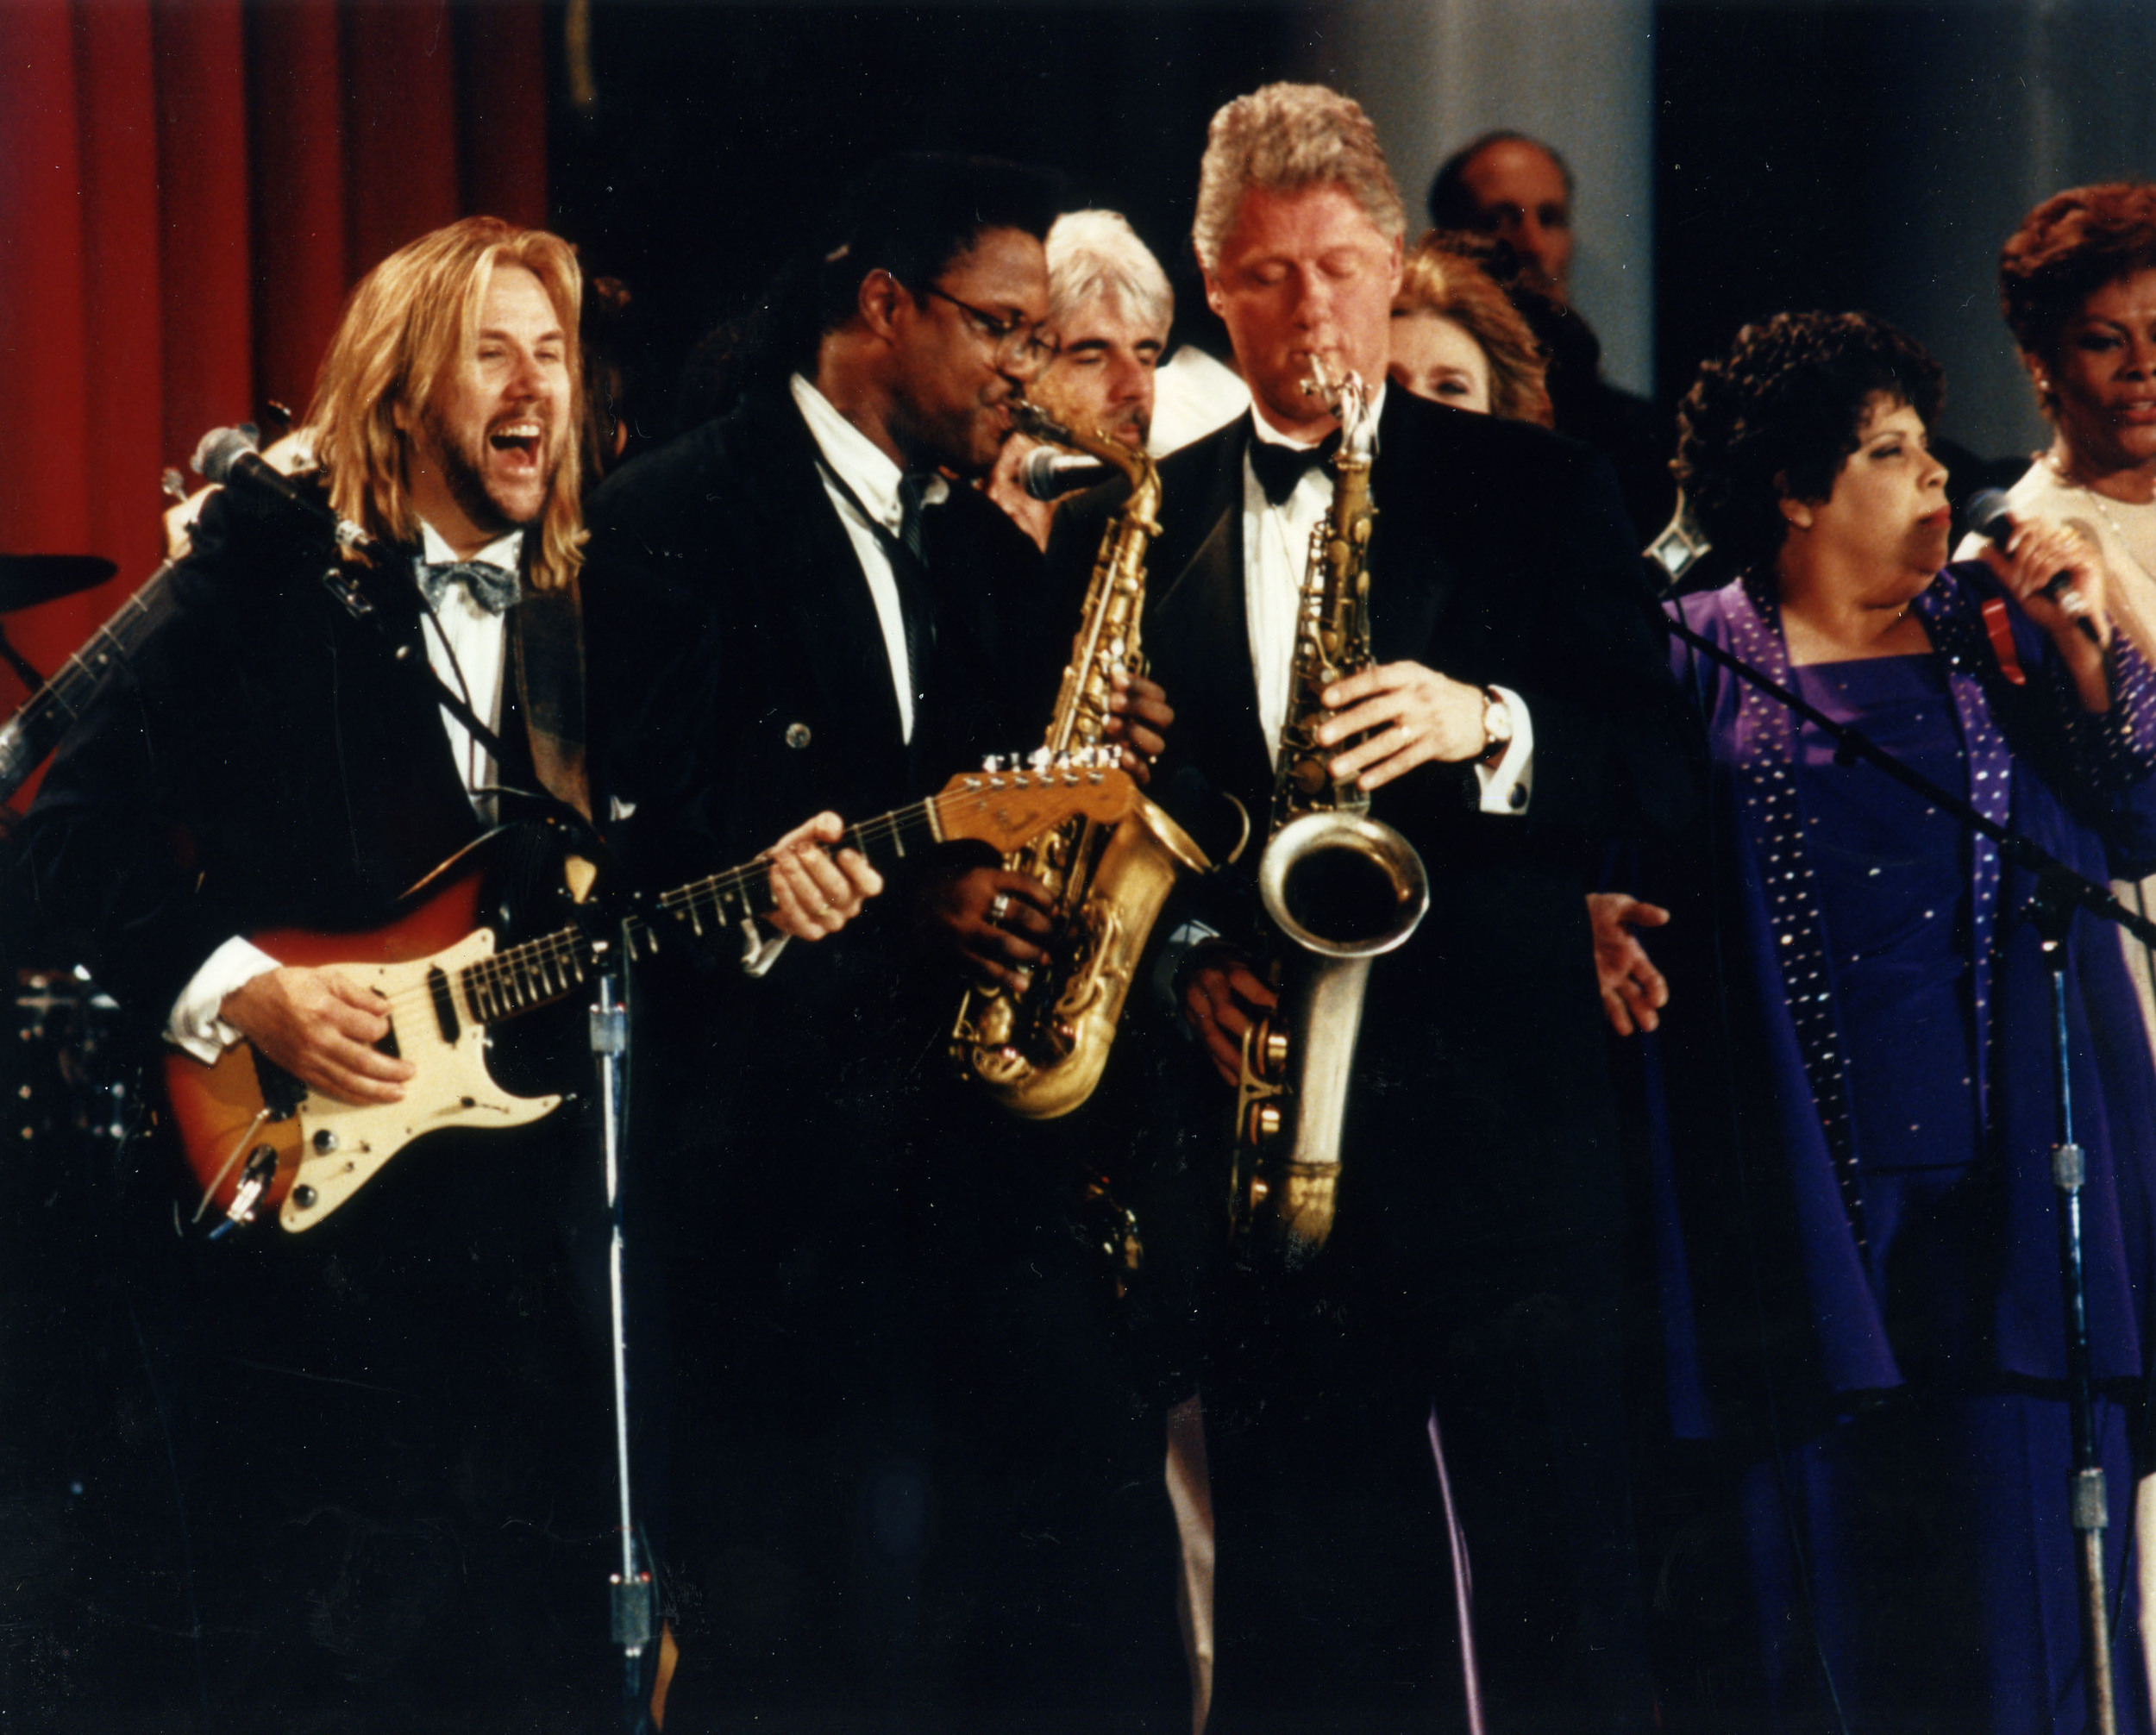 David music directing President Clinton's 1993 Arkansas Ball